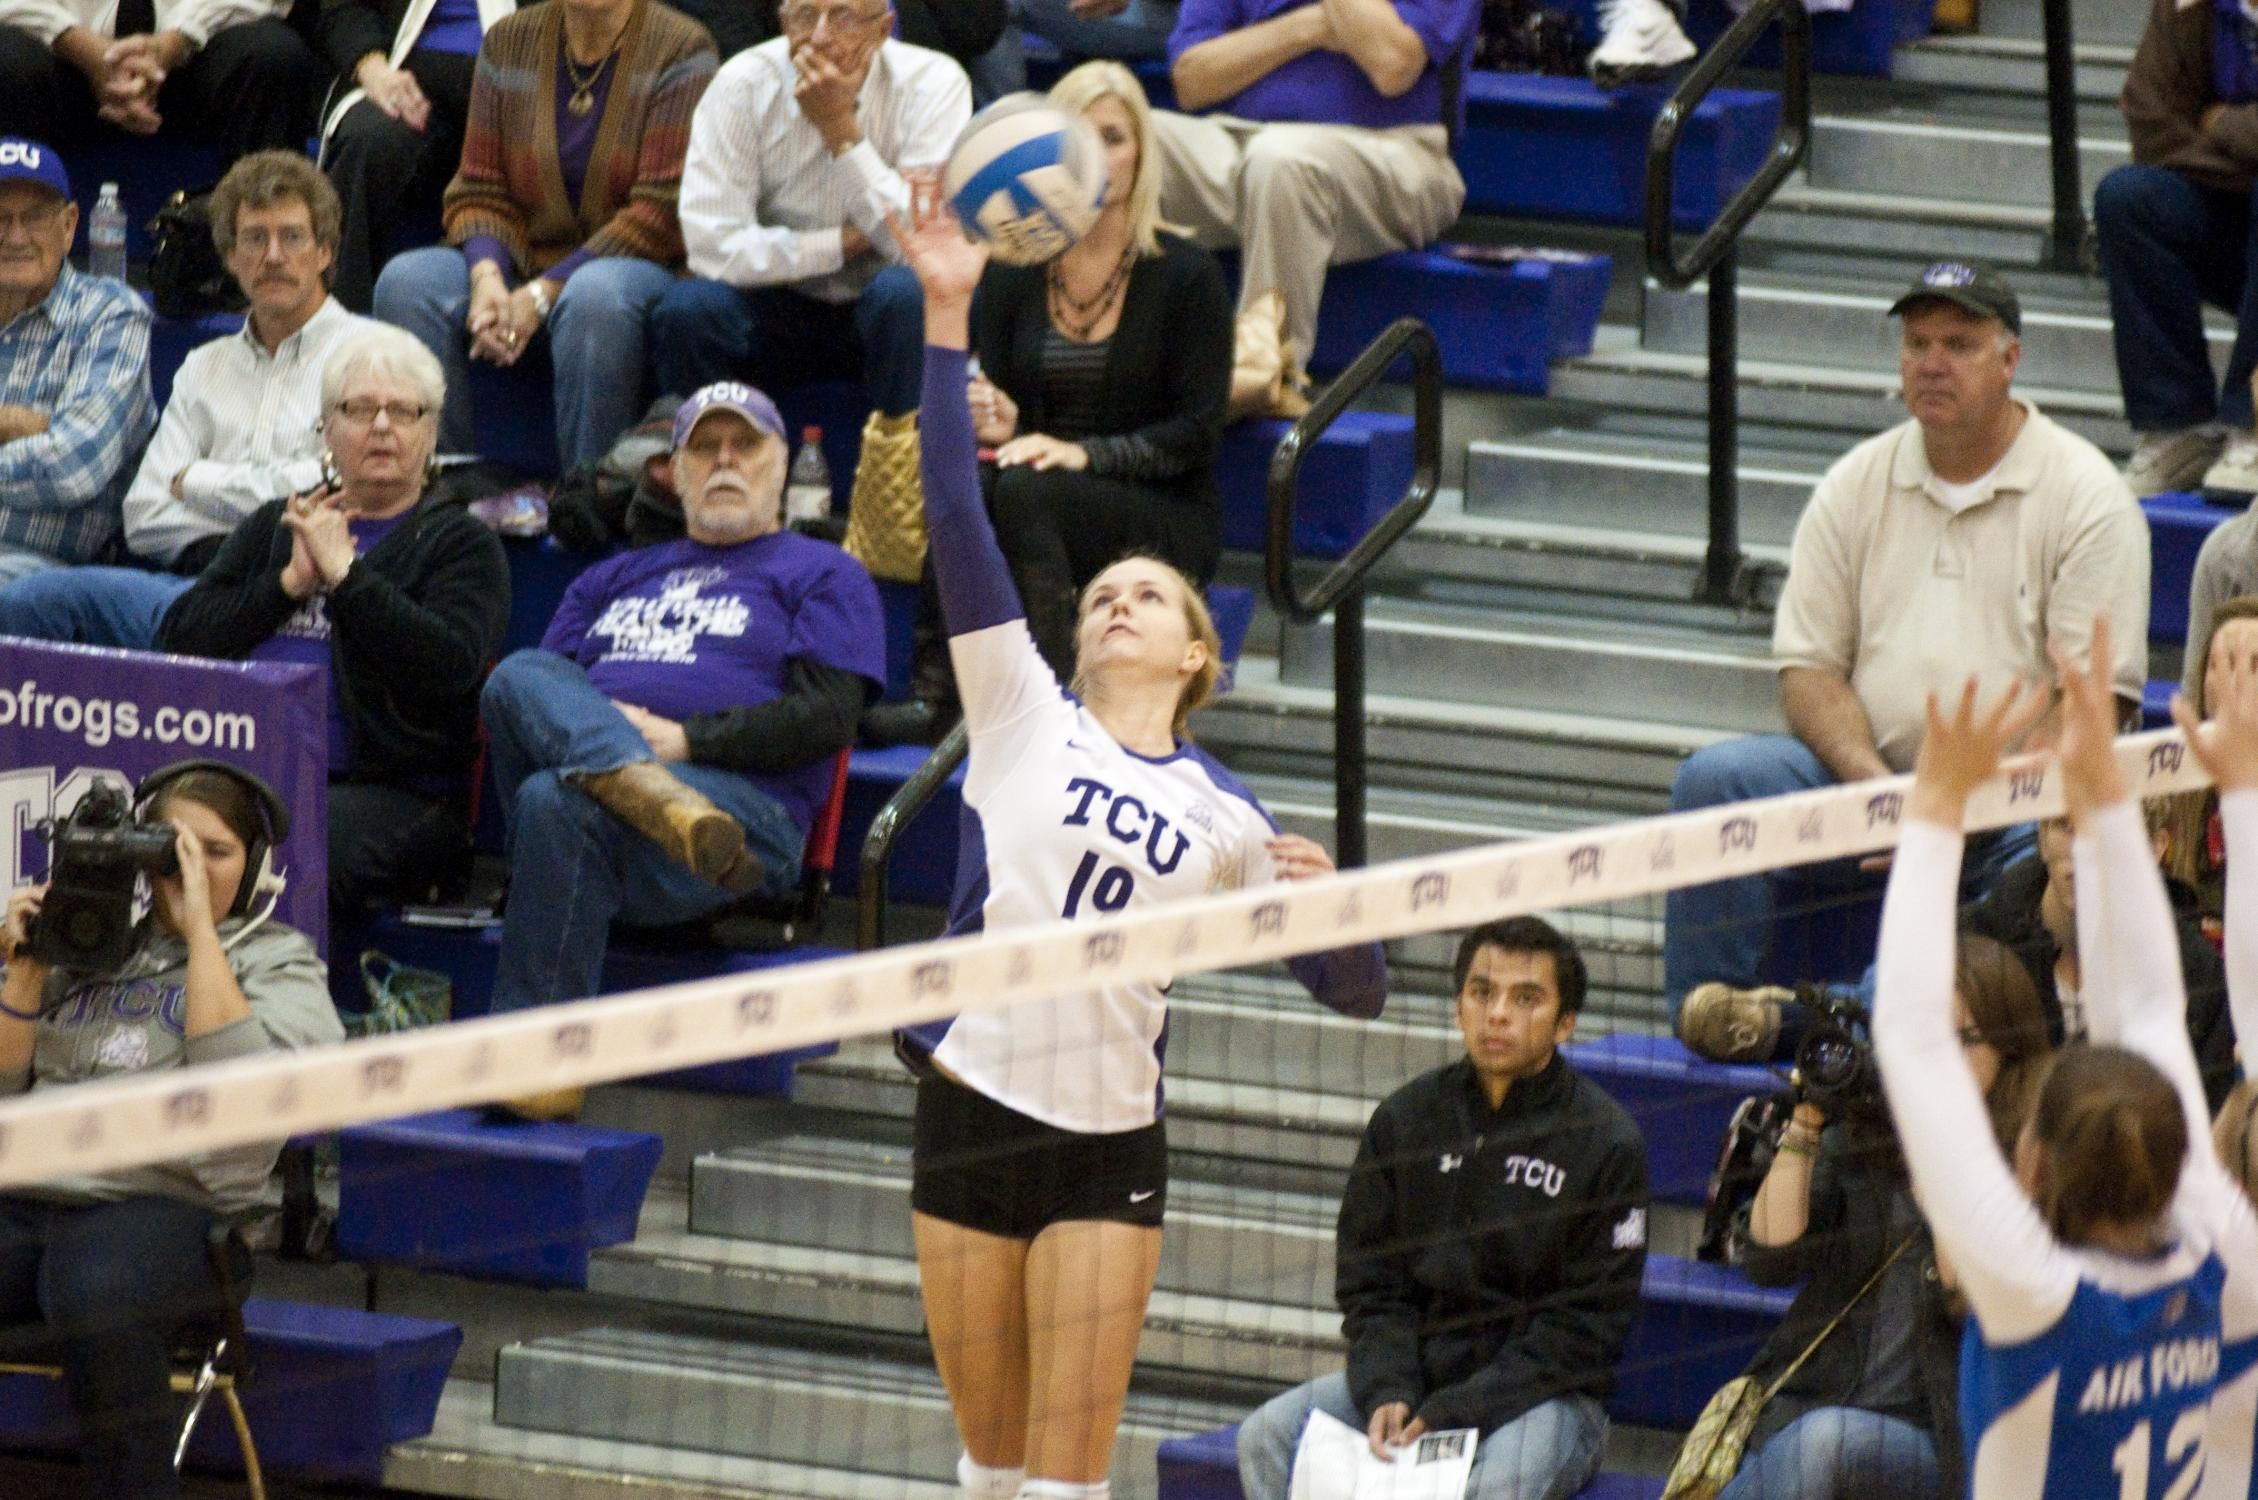 Frogs Defeat Unlv 3 0 With Images Tcu Volleyball Tcu Volleyball